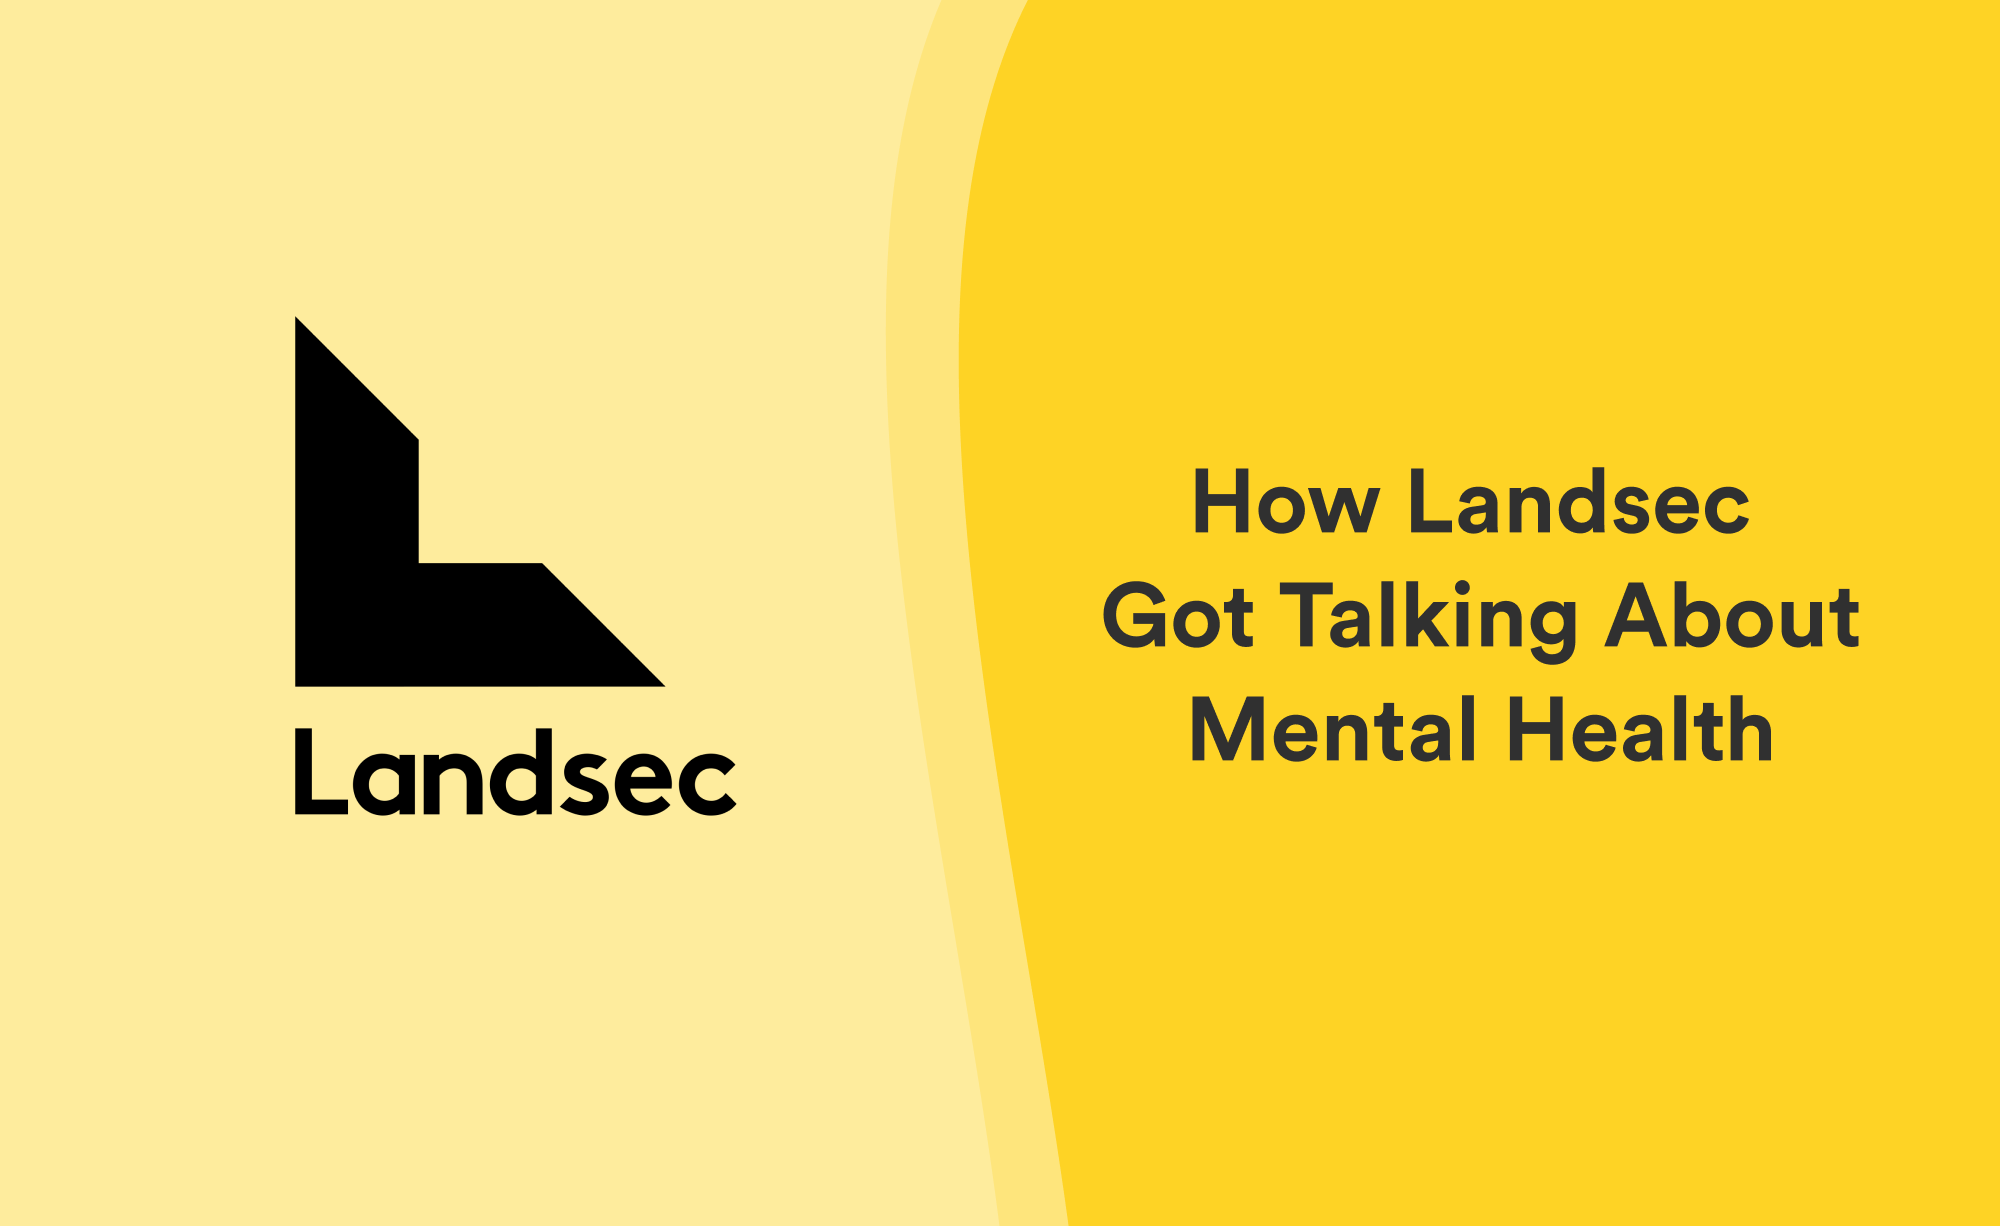 How Landsec partner with Unmind to create a workplace culture of openness around mental health